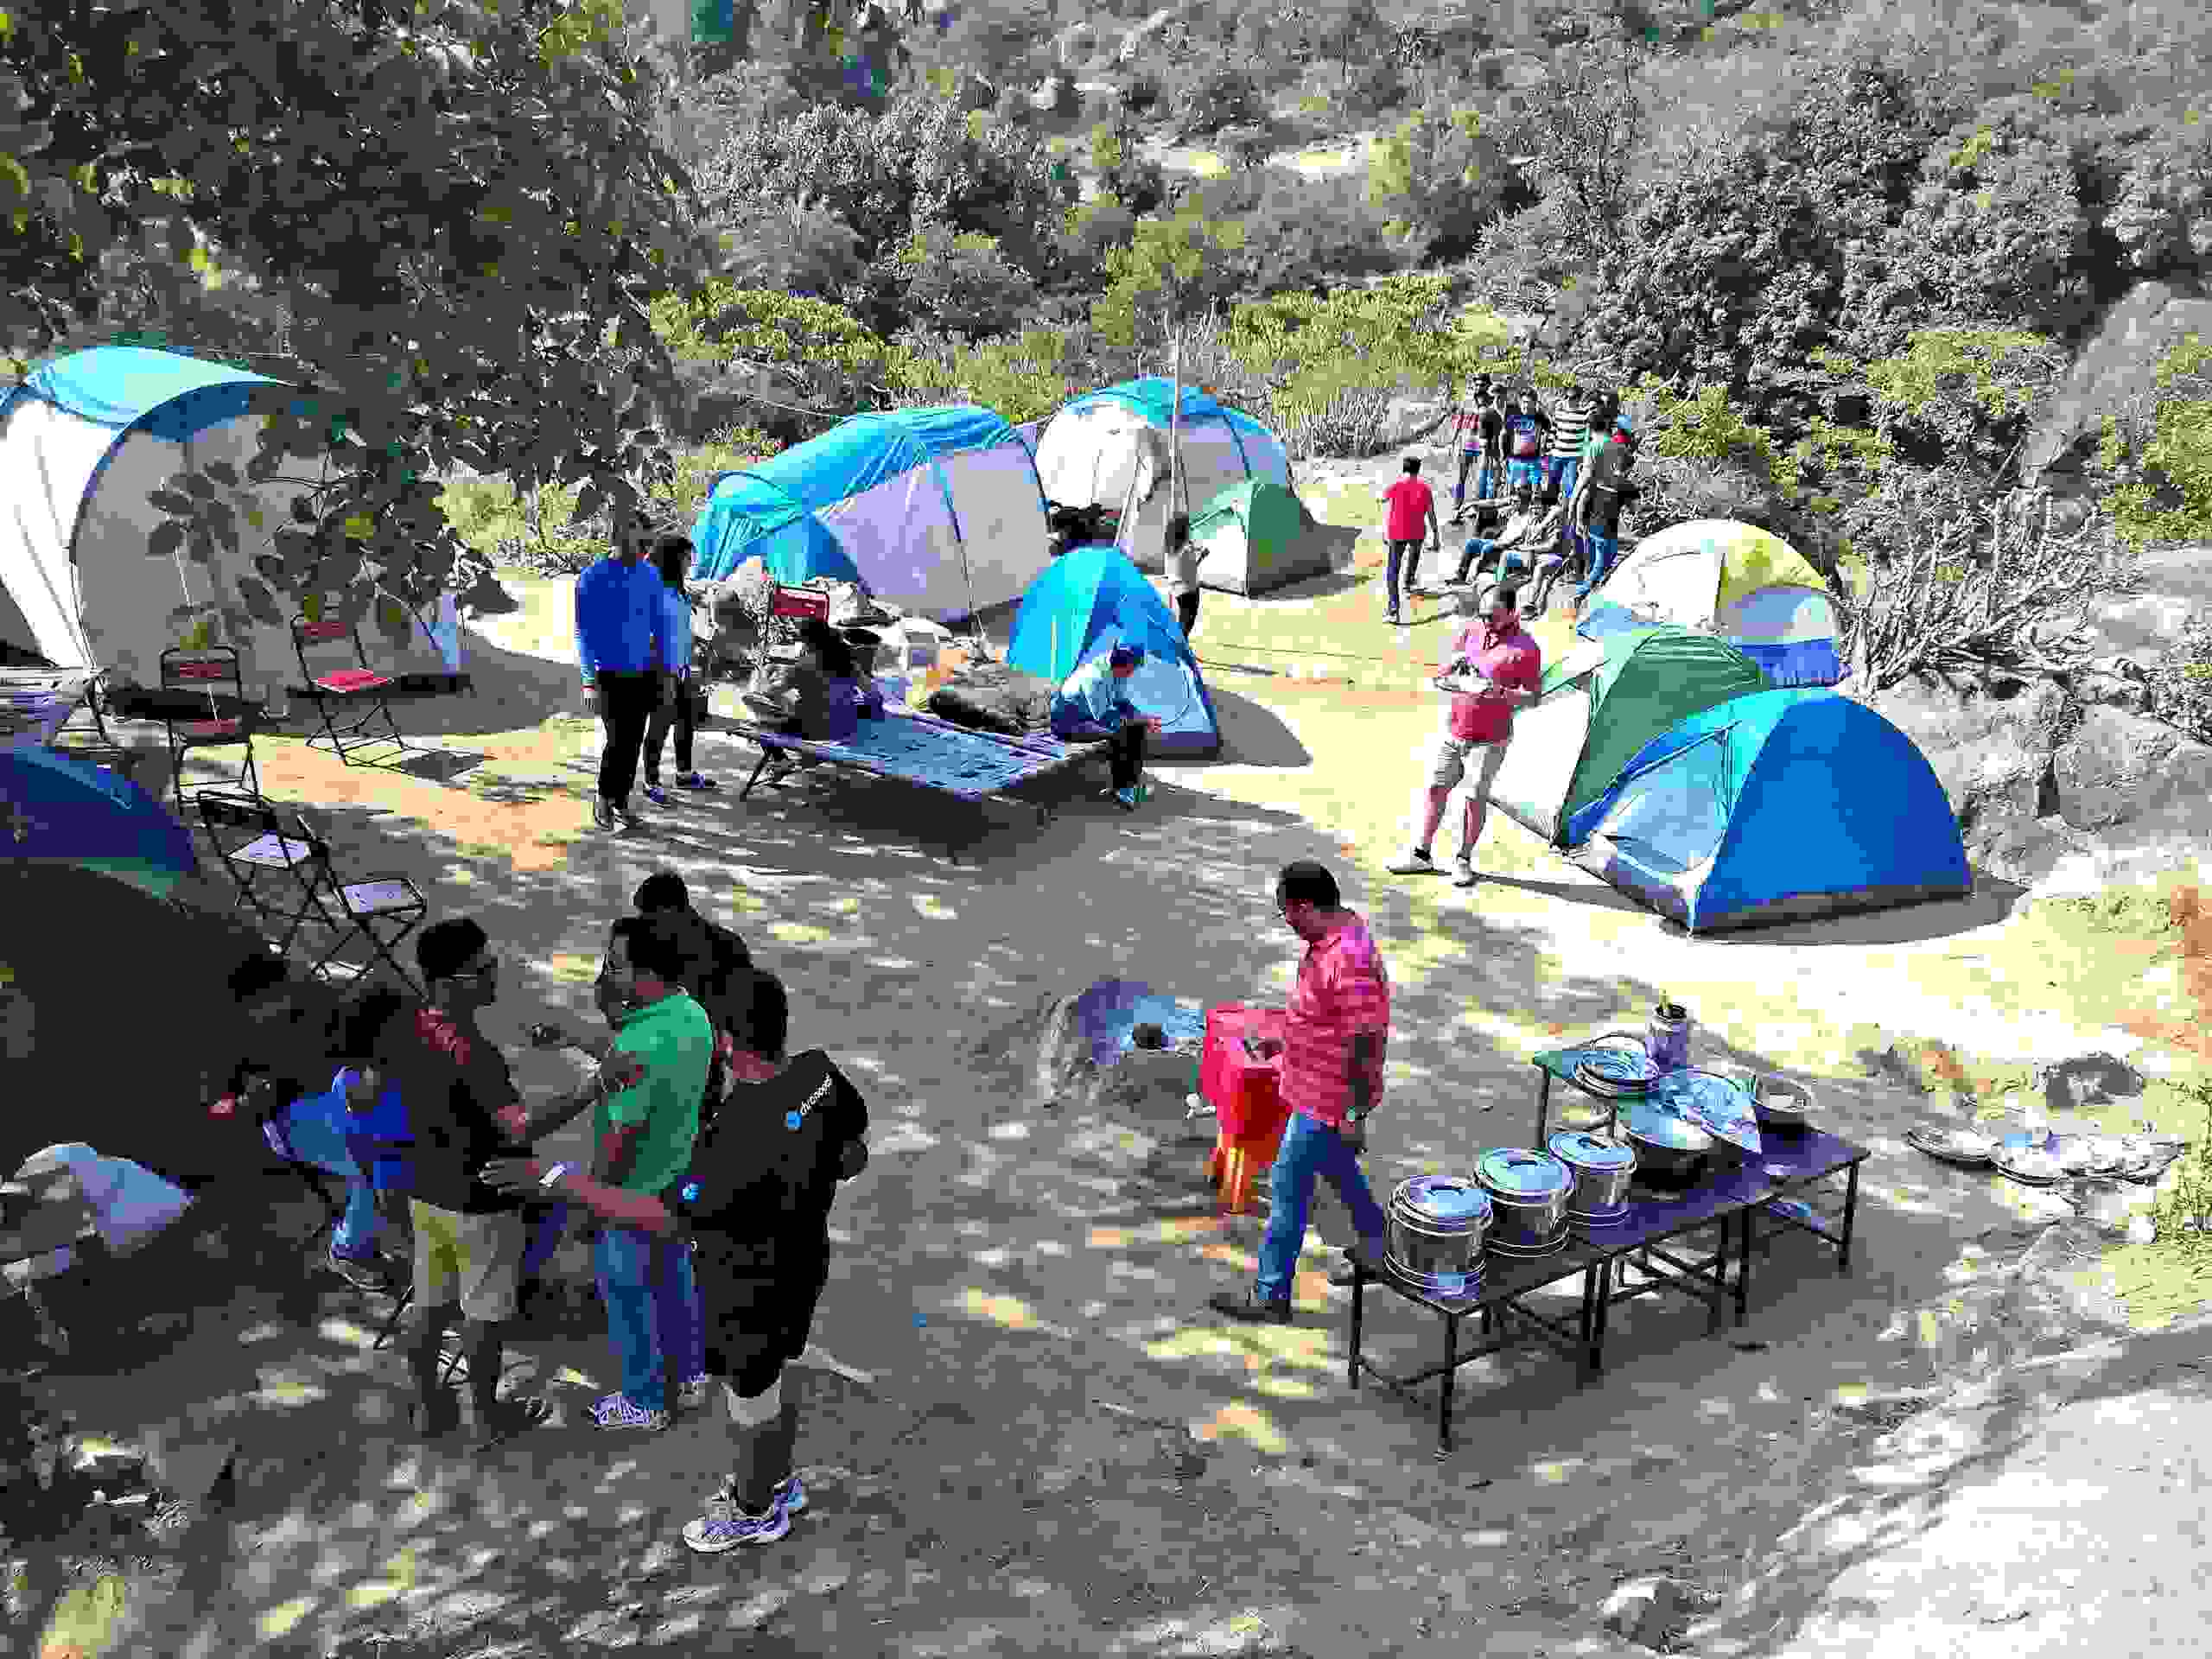 camping adventure activities in mount abu